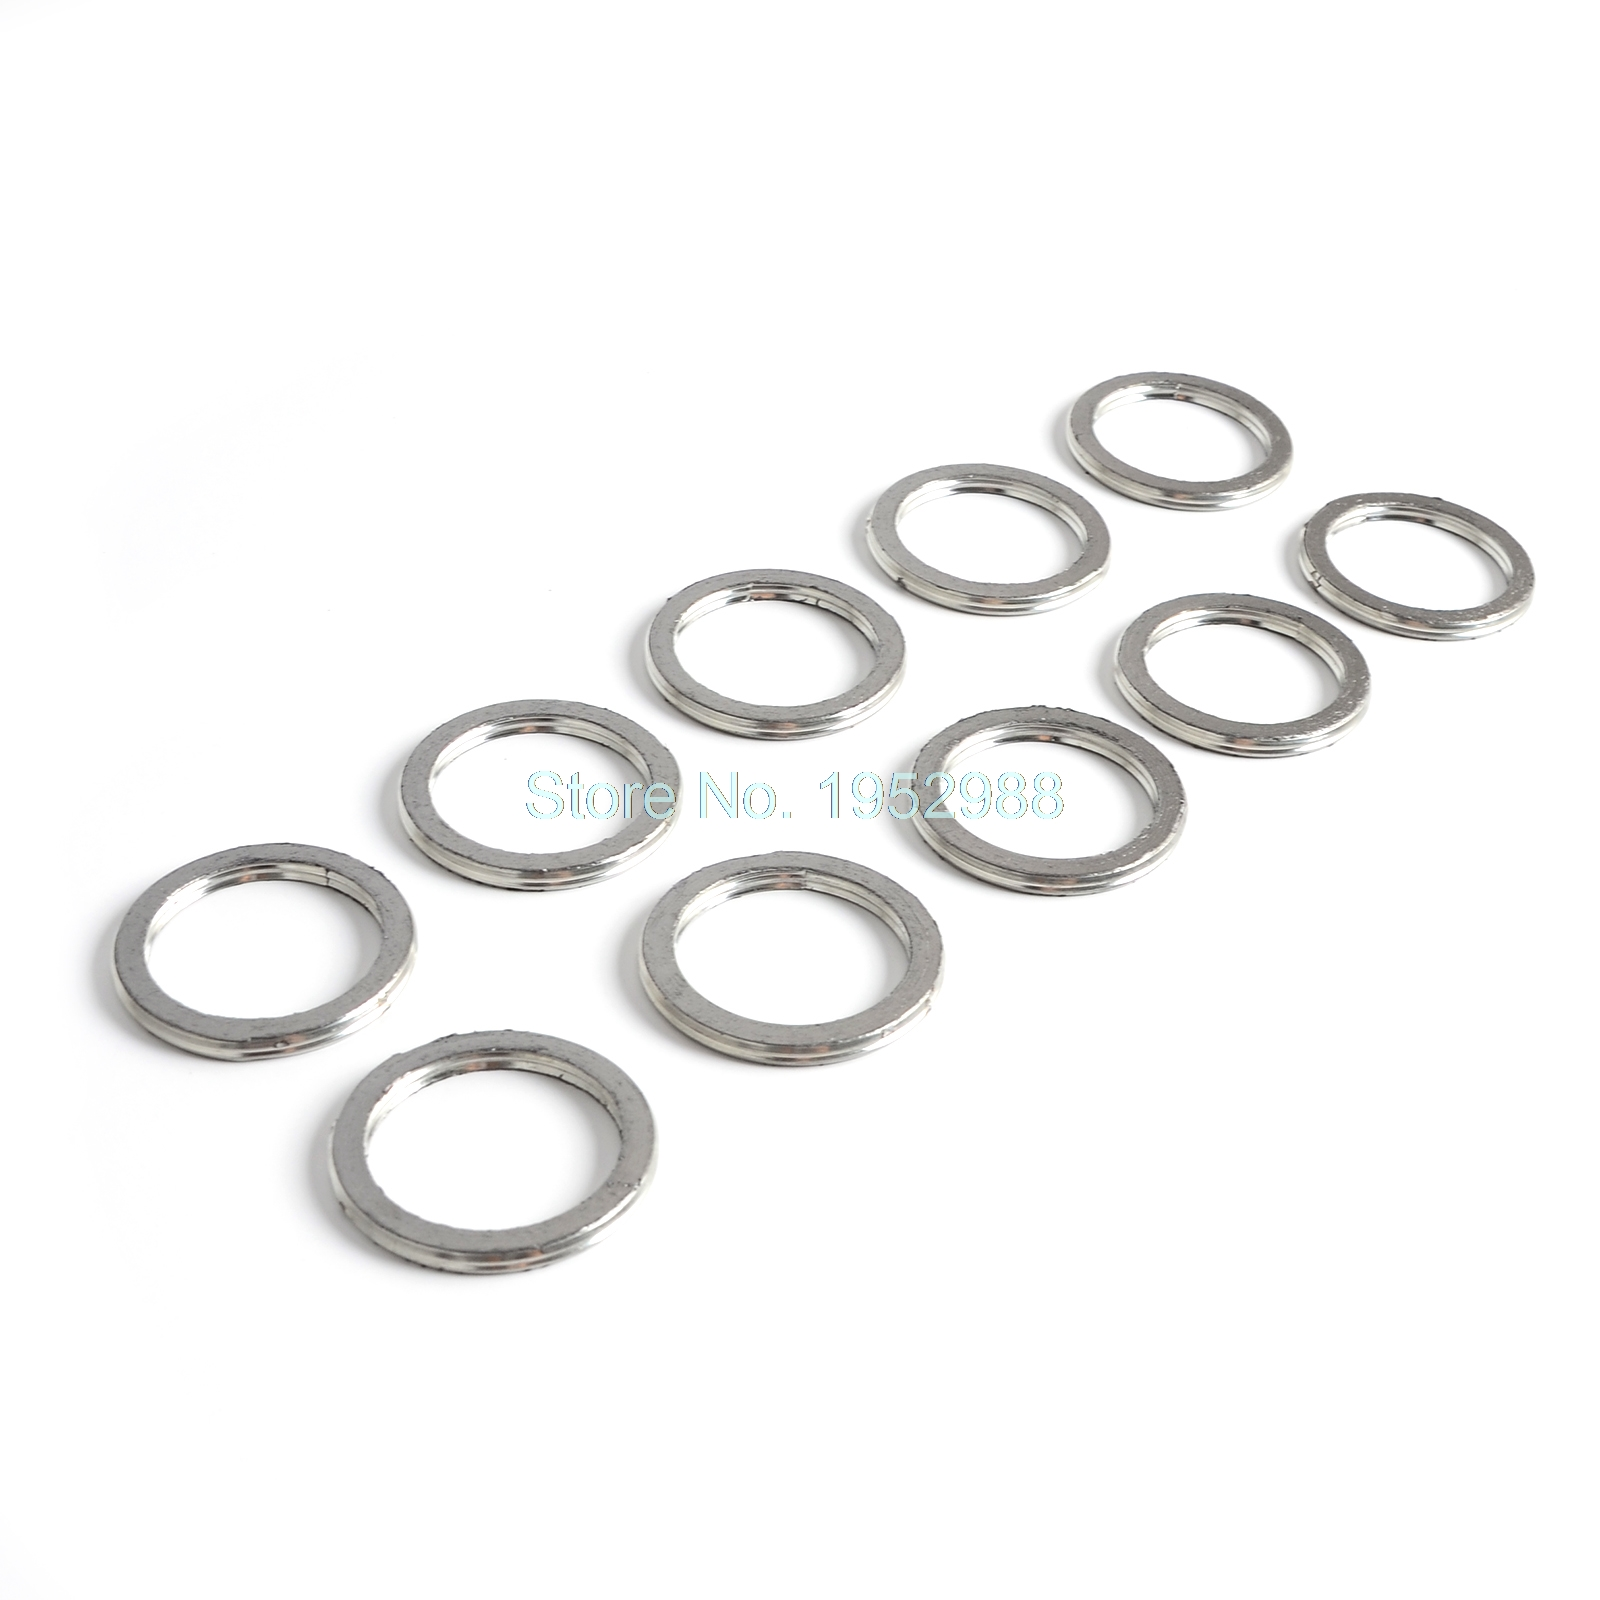 Online Buy Wholesale Exhaust Gasket From China Exhaust Gasket Wholesalers